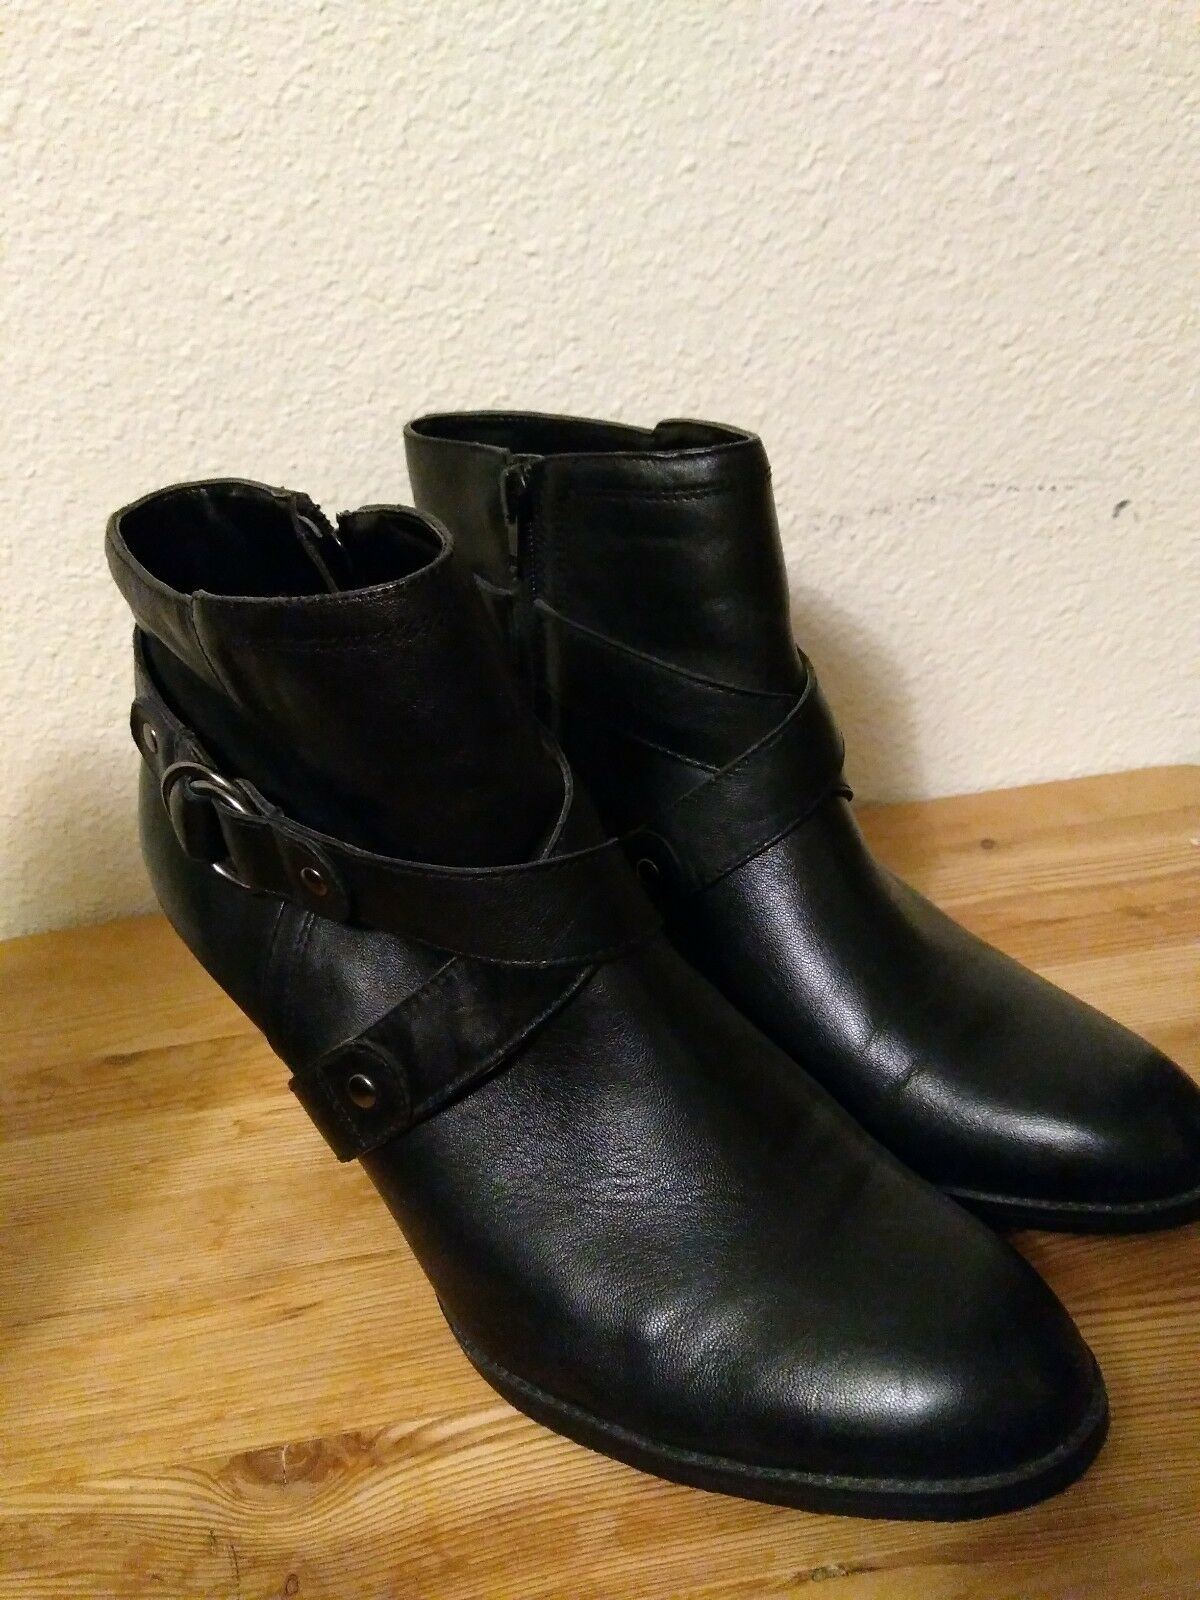 A.n.a Black LEATHER Zip Up High Heel Ankle Boot Women's Size 11 M straps rings